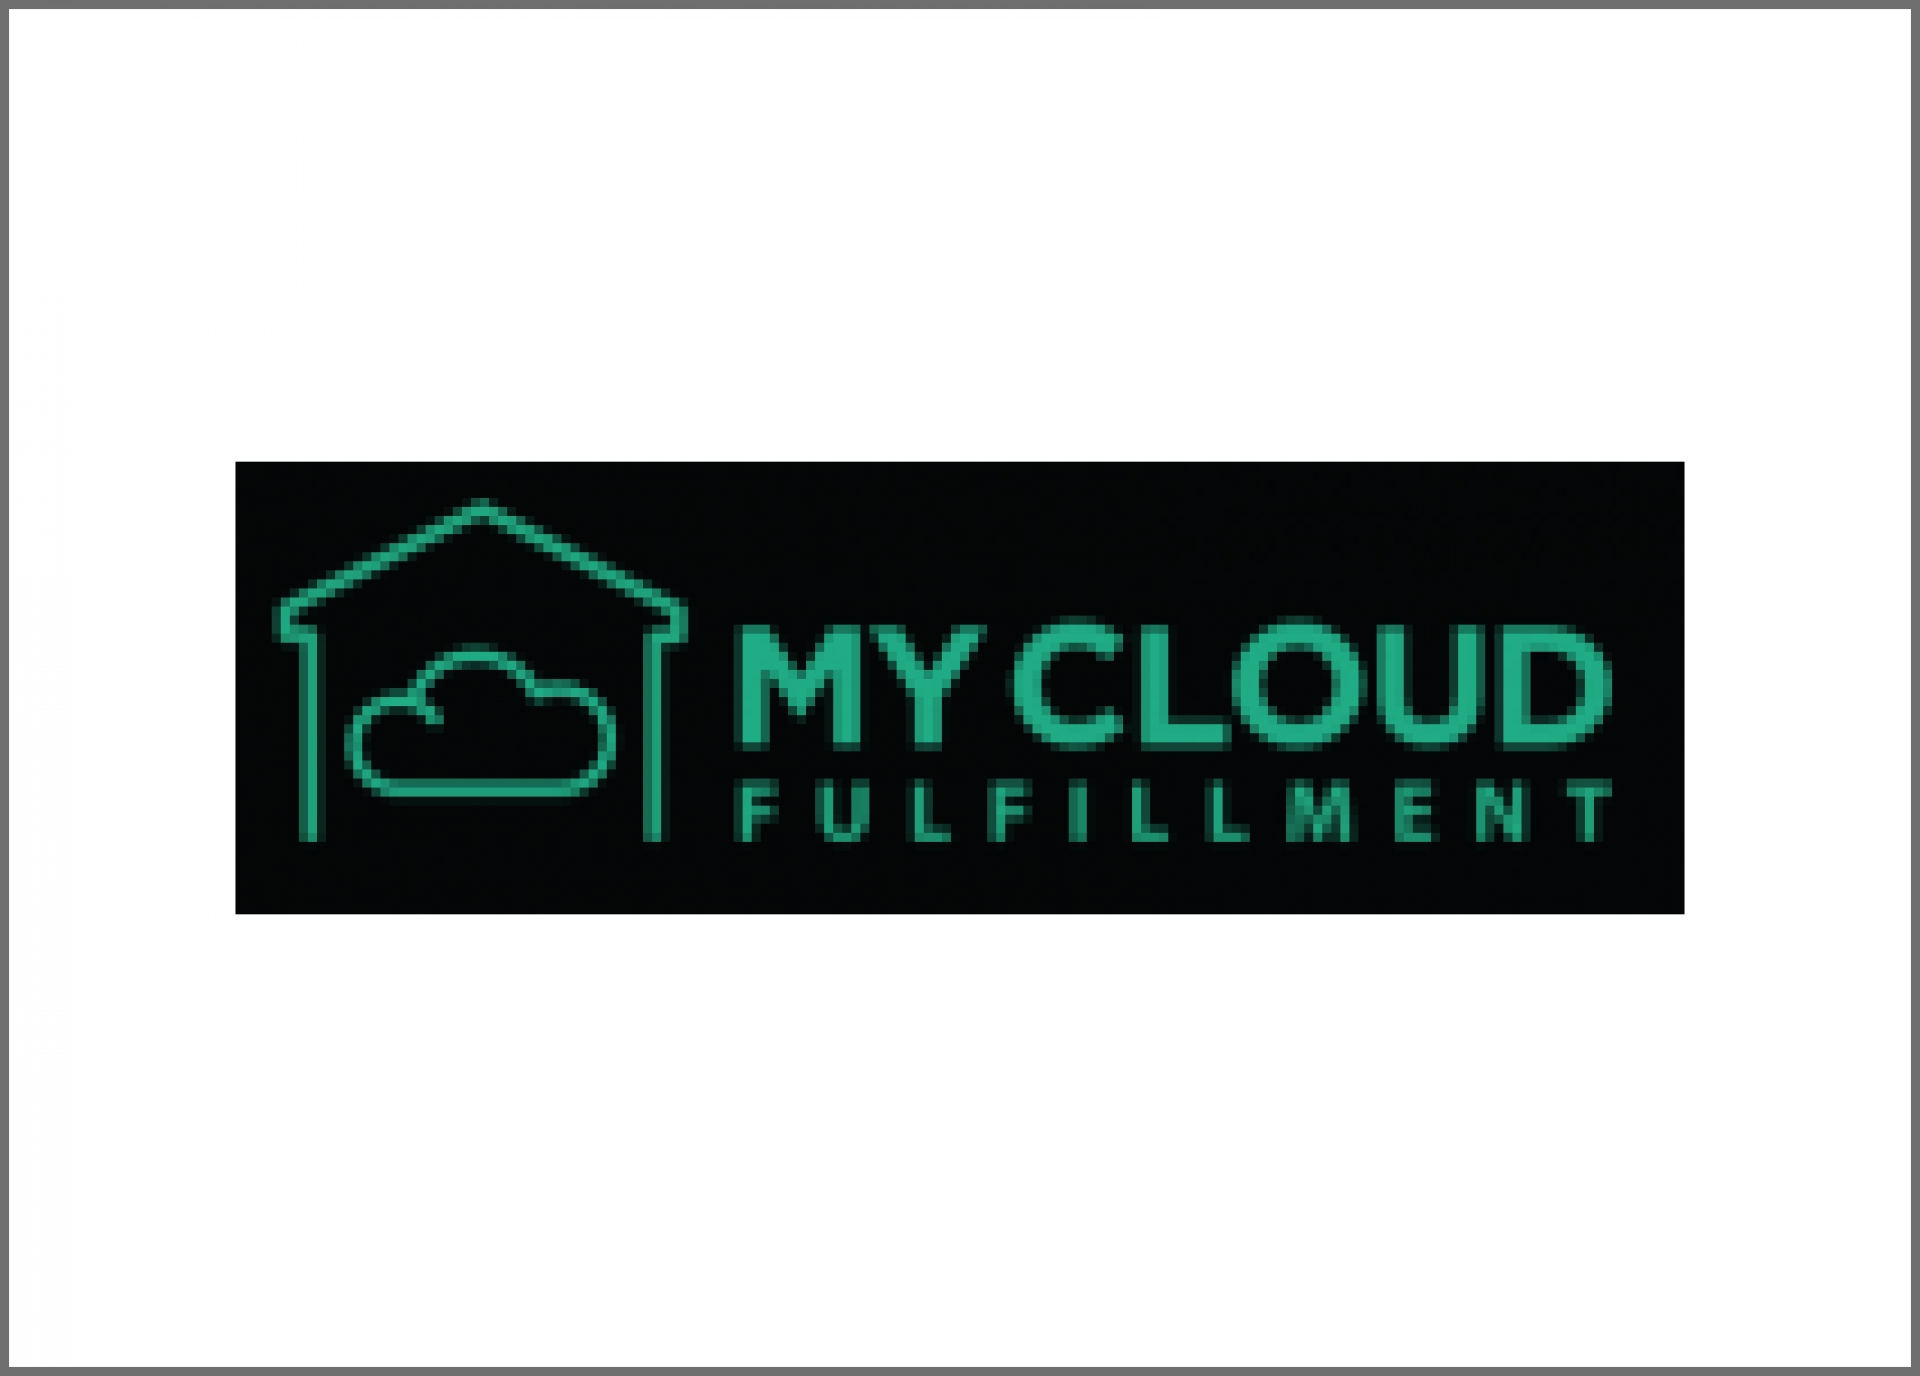 My Cloud Fulfillment